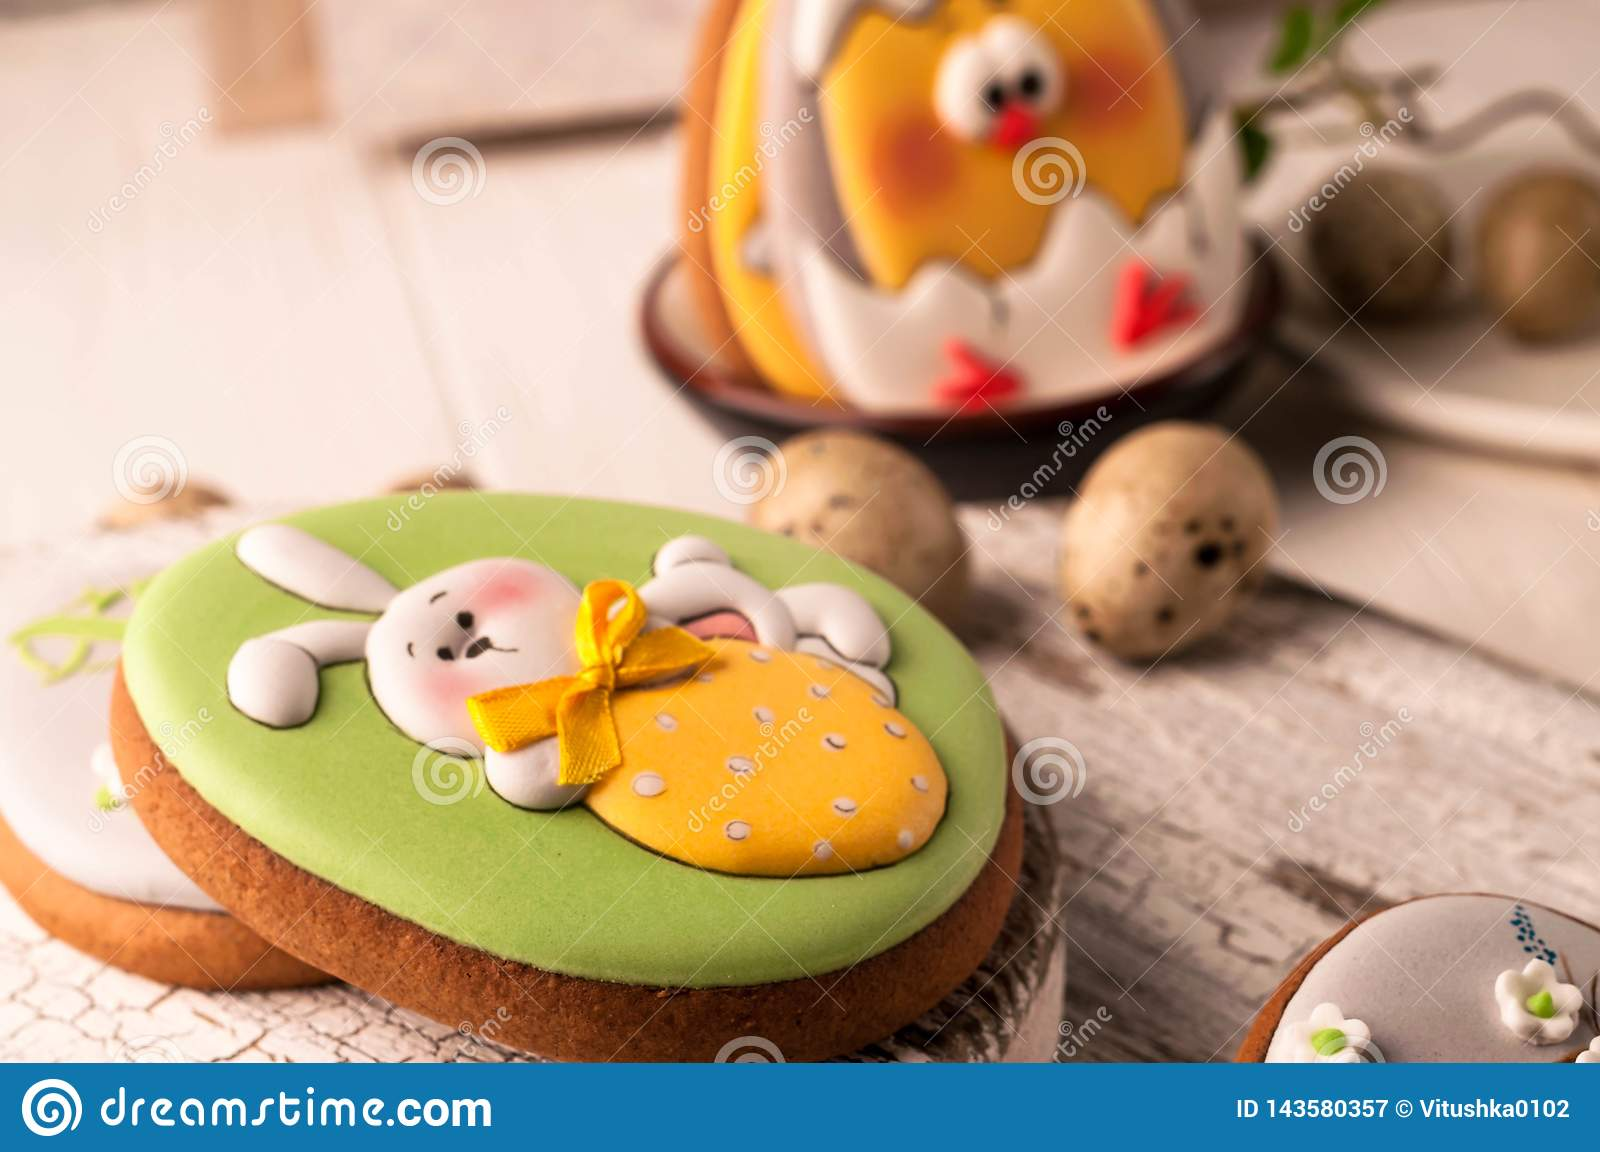 Easter green cookie with painted easter bunny in white bow holding strawberry on white cutting boards and wooden surface